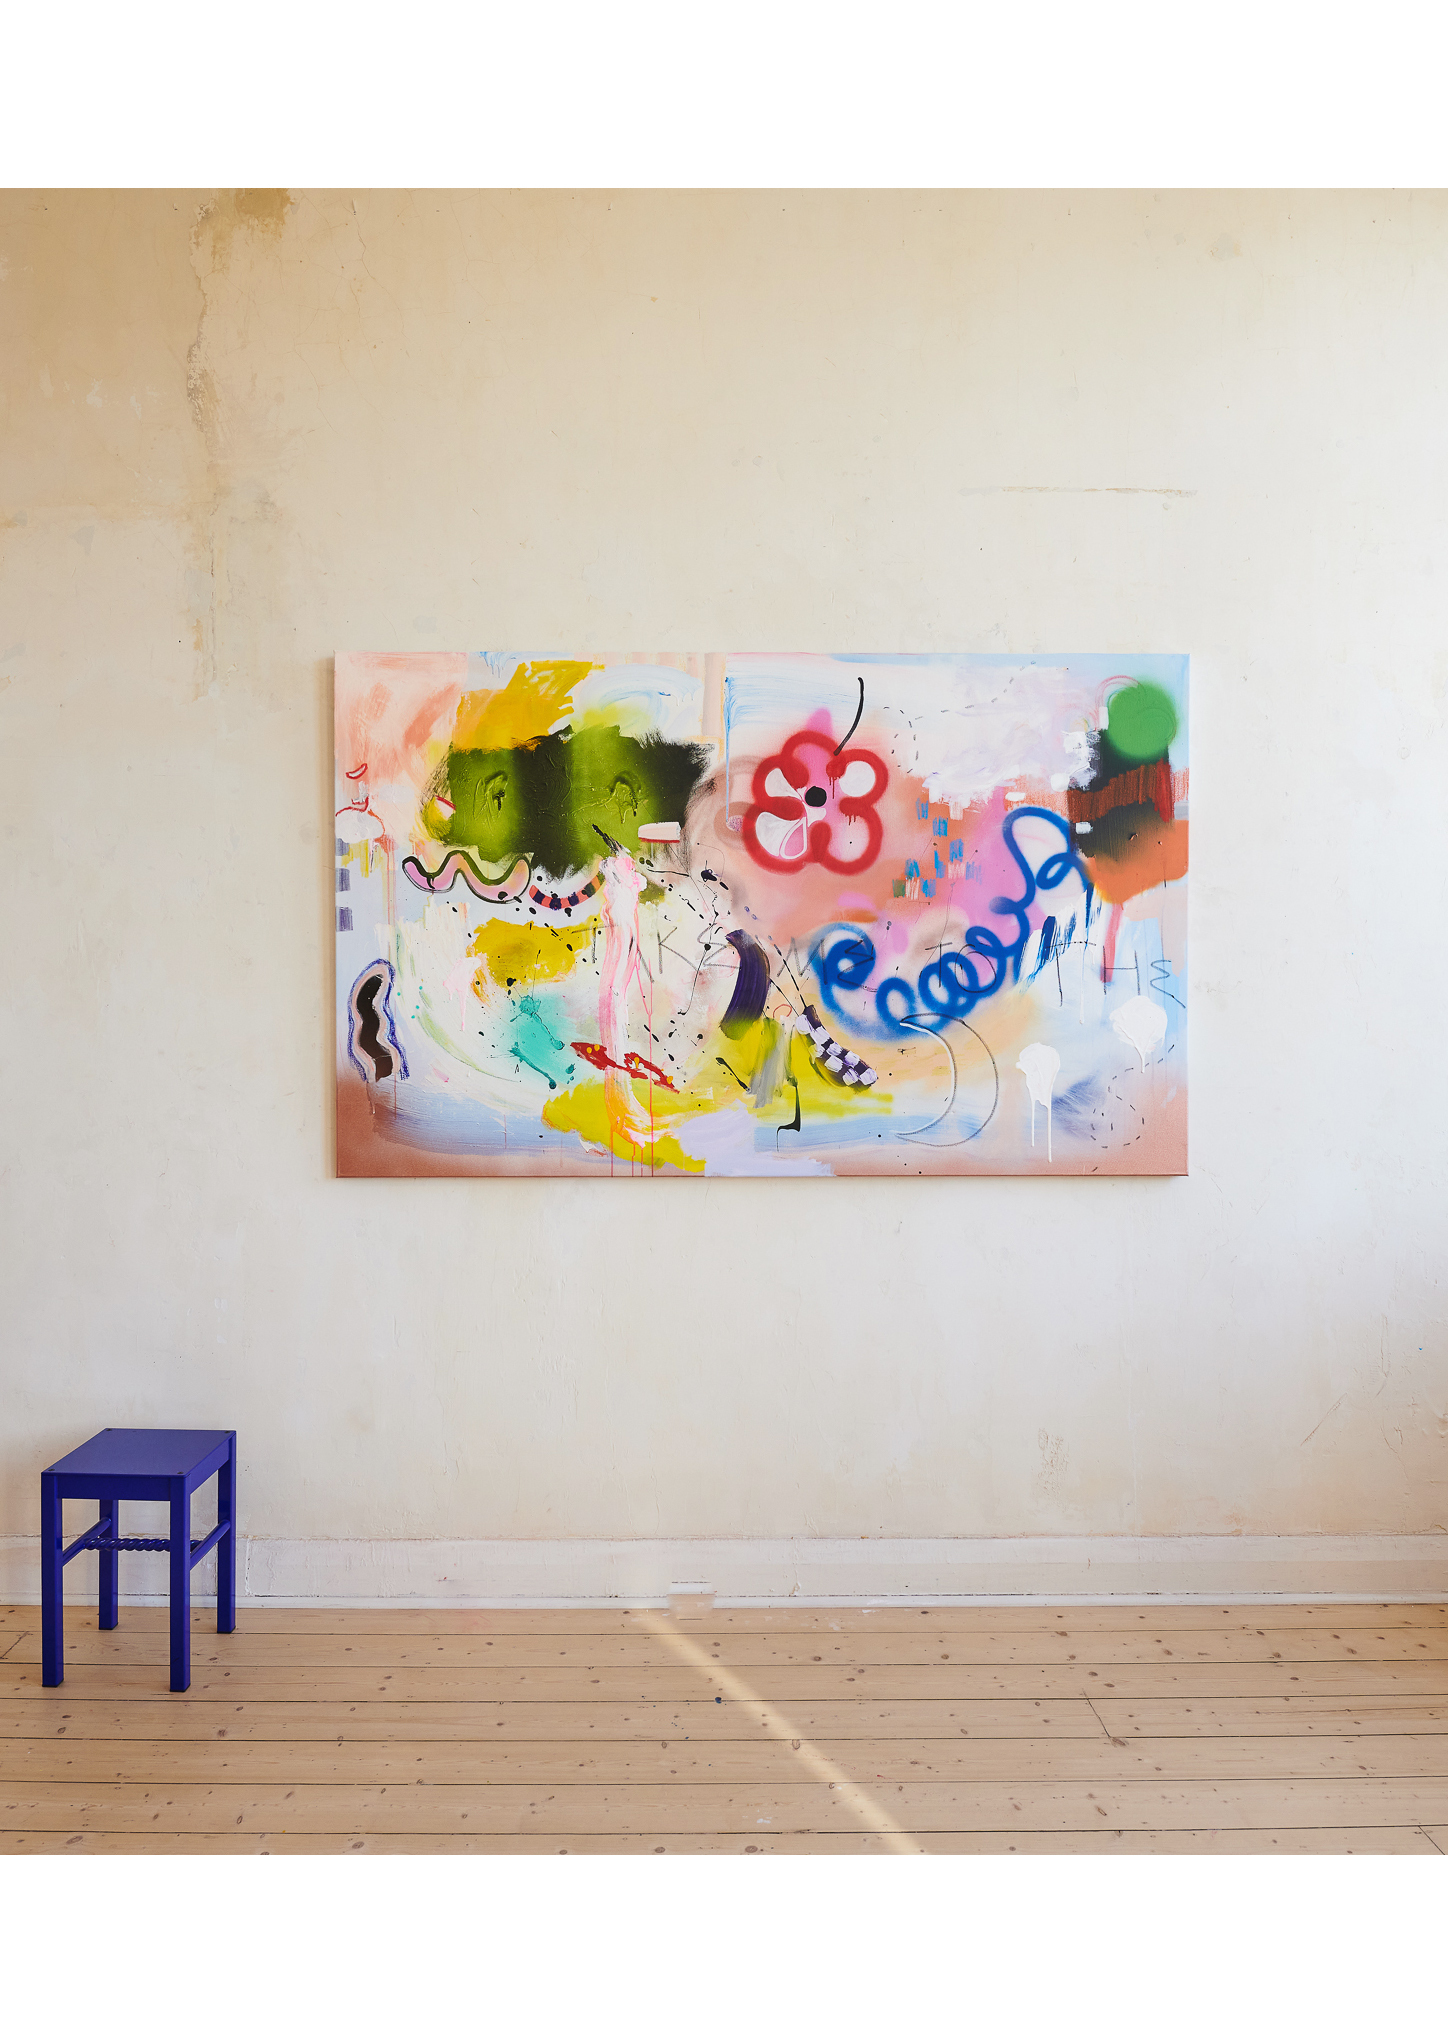 Marisa Mu At the above I Am Ready Take Me To The Moon 198cm x 122cm acrylic and oil pastels on canvas 3